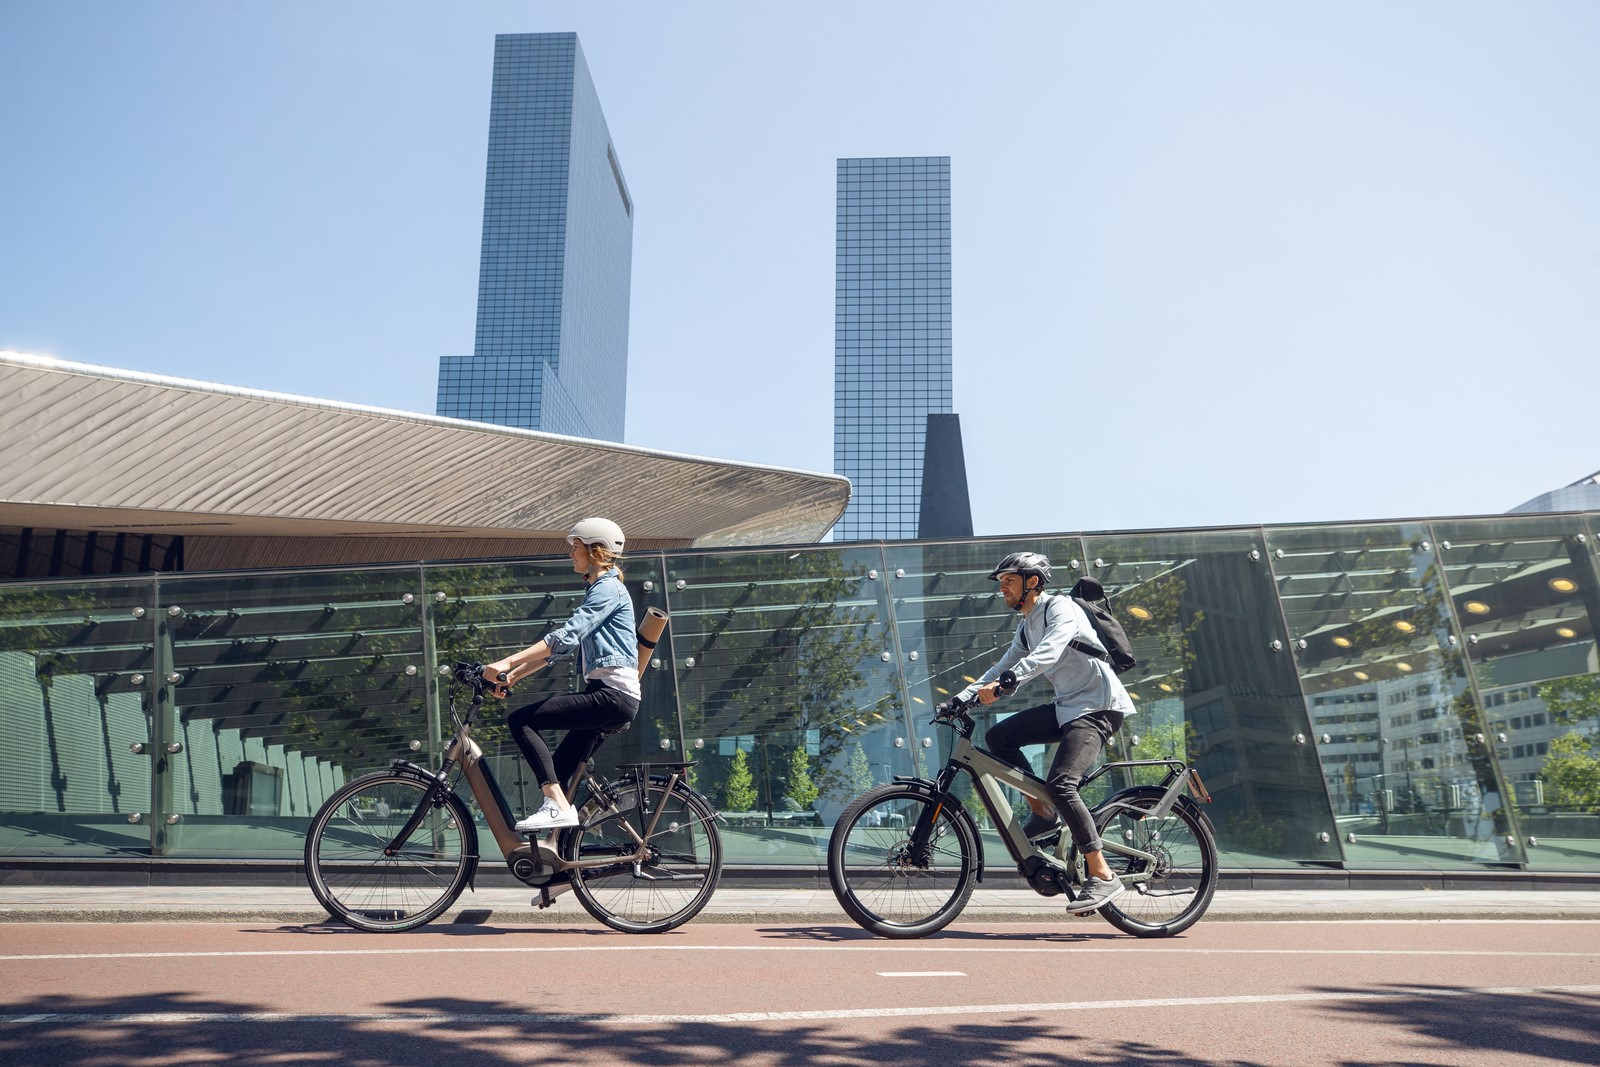 Bicycles and the eBike play an increasingly important role in individual mobility – making the sustainable development of the infrastructure all the more important.